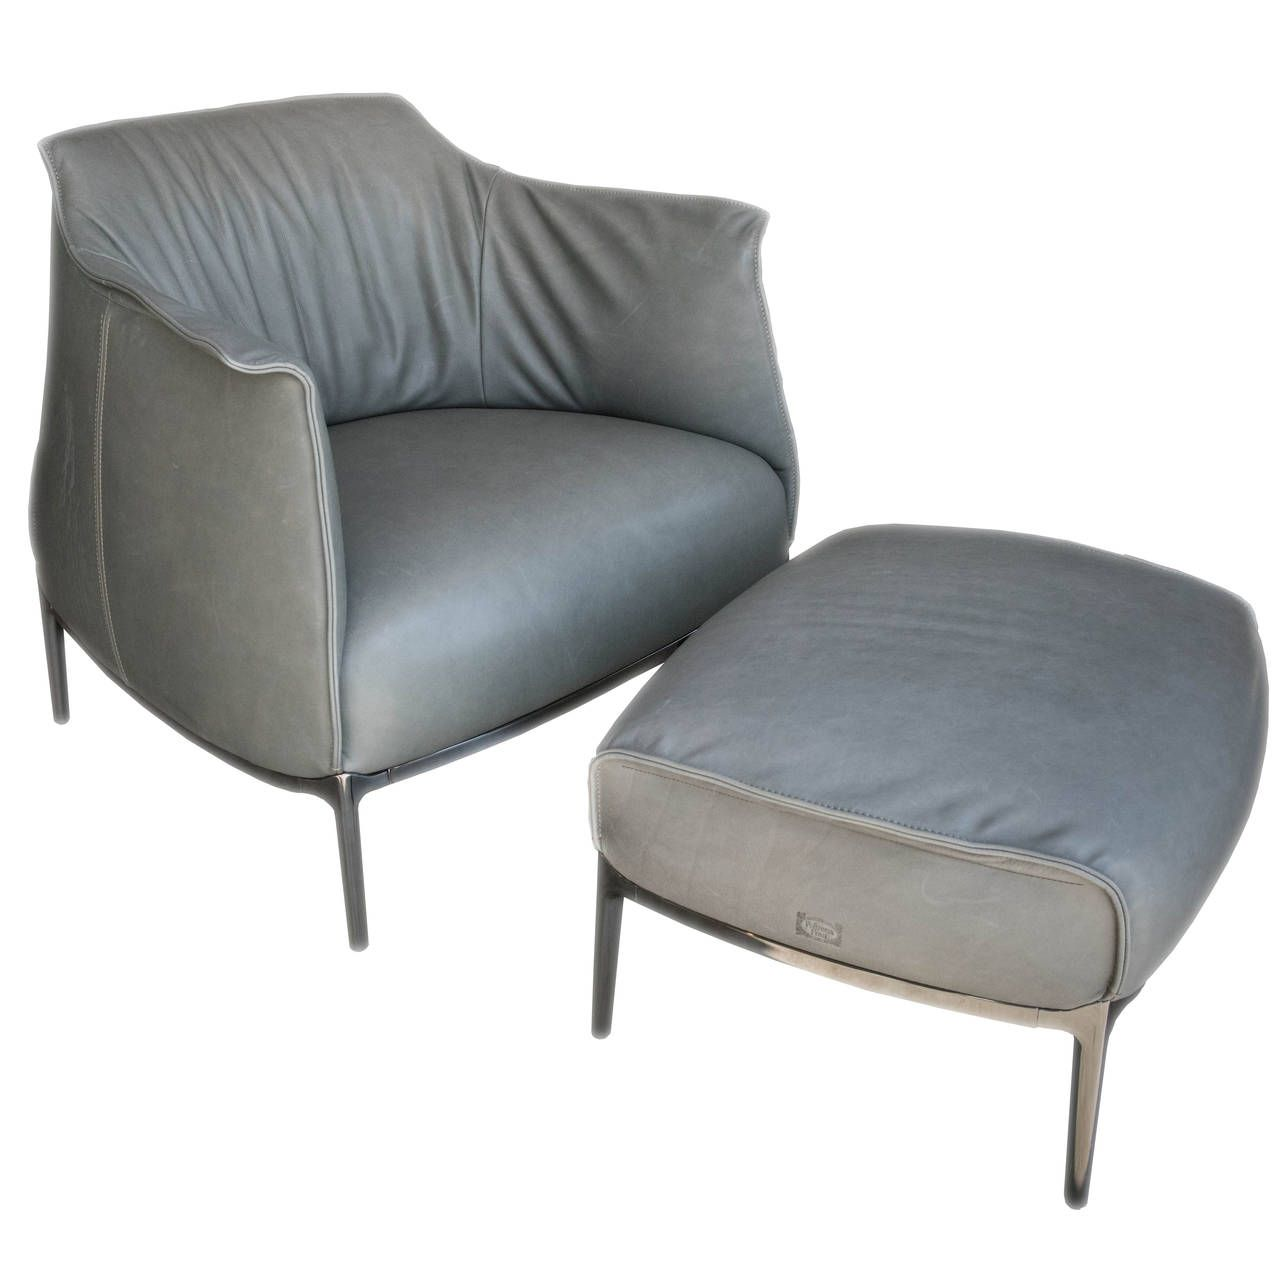 Poltron Frau Archibald Armchair With Ottoman From A Unique